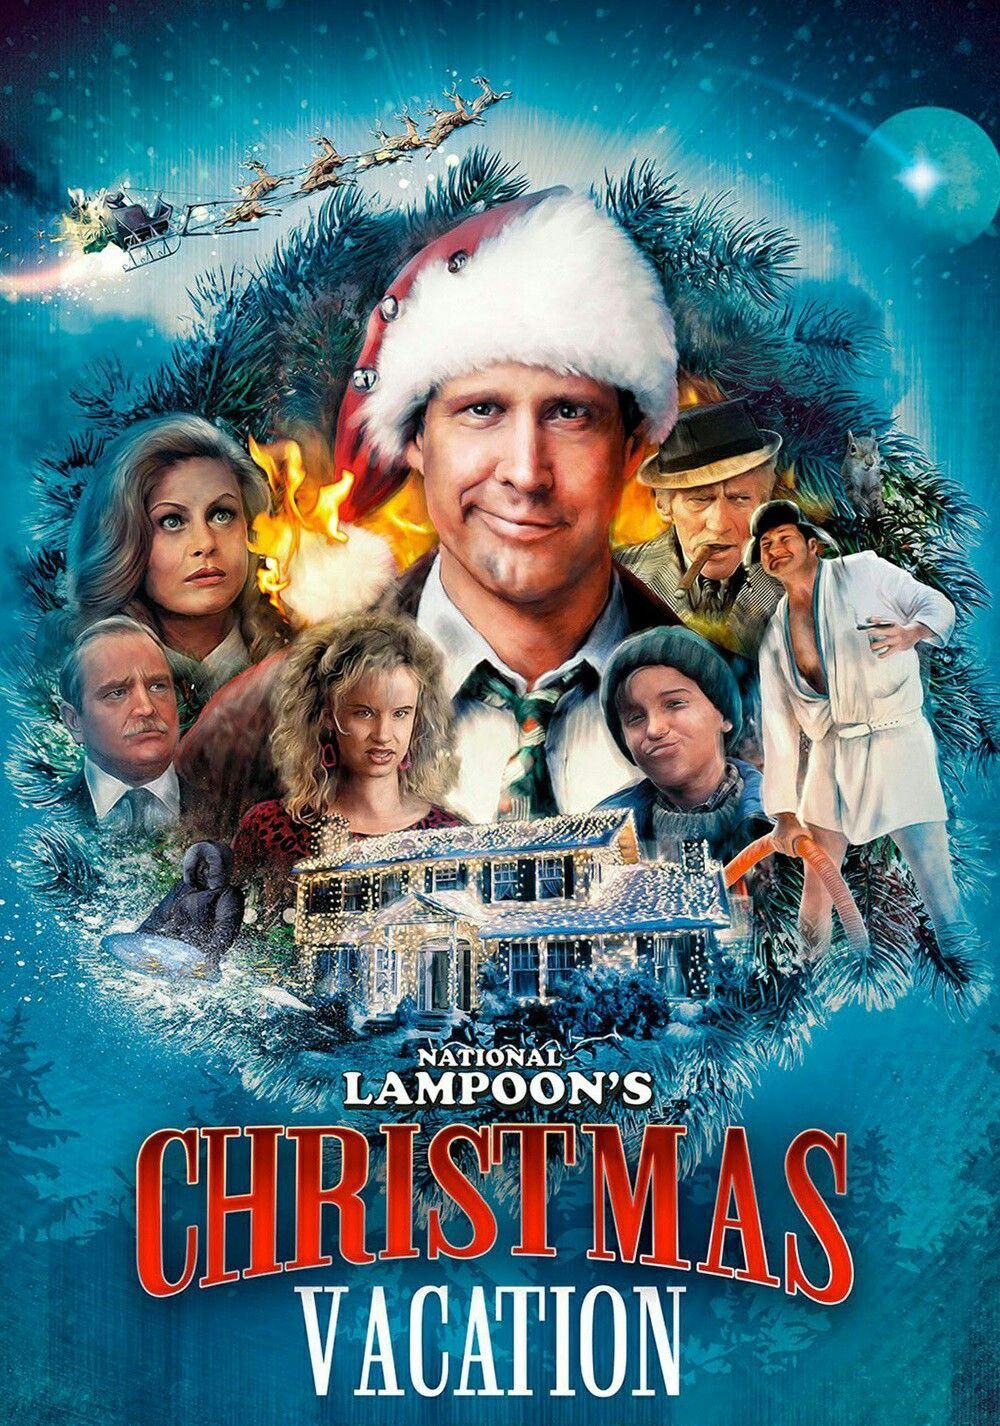 National Lampoons Christmas Vacation (1989)